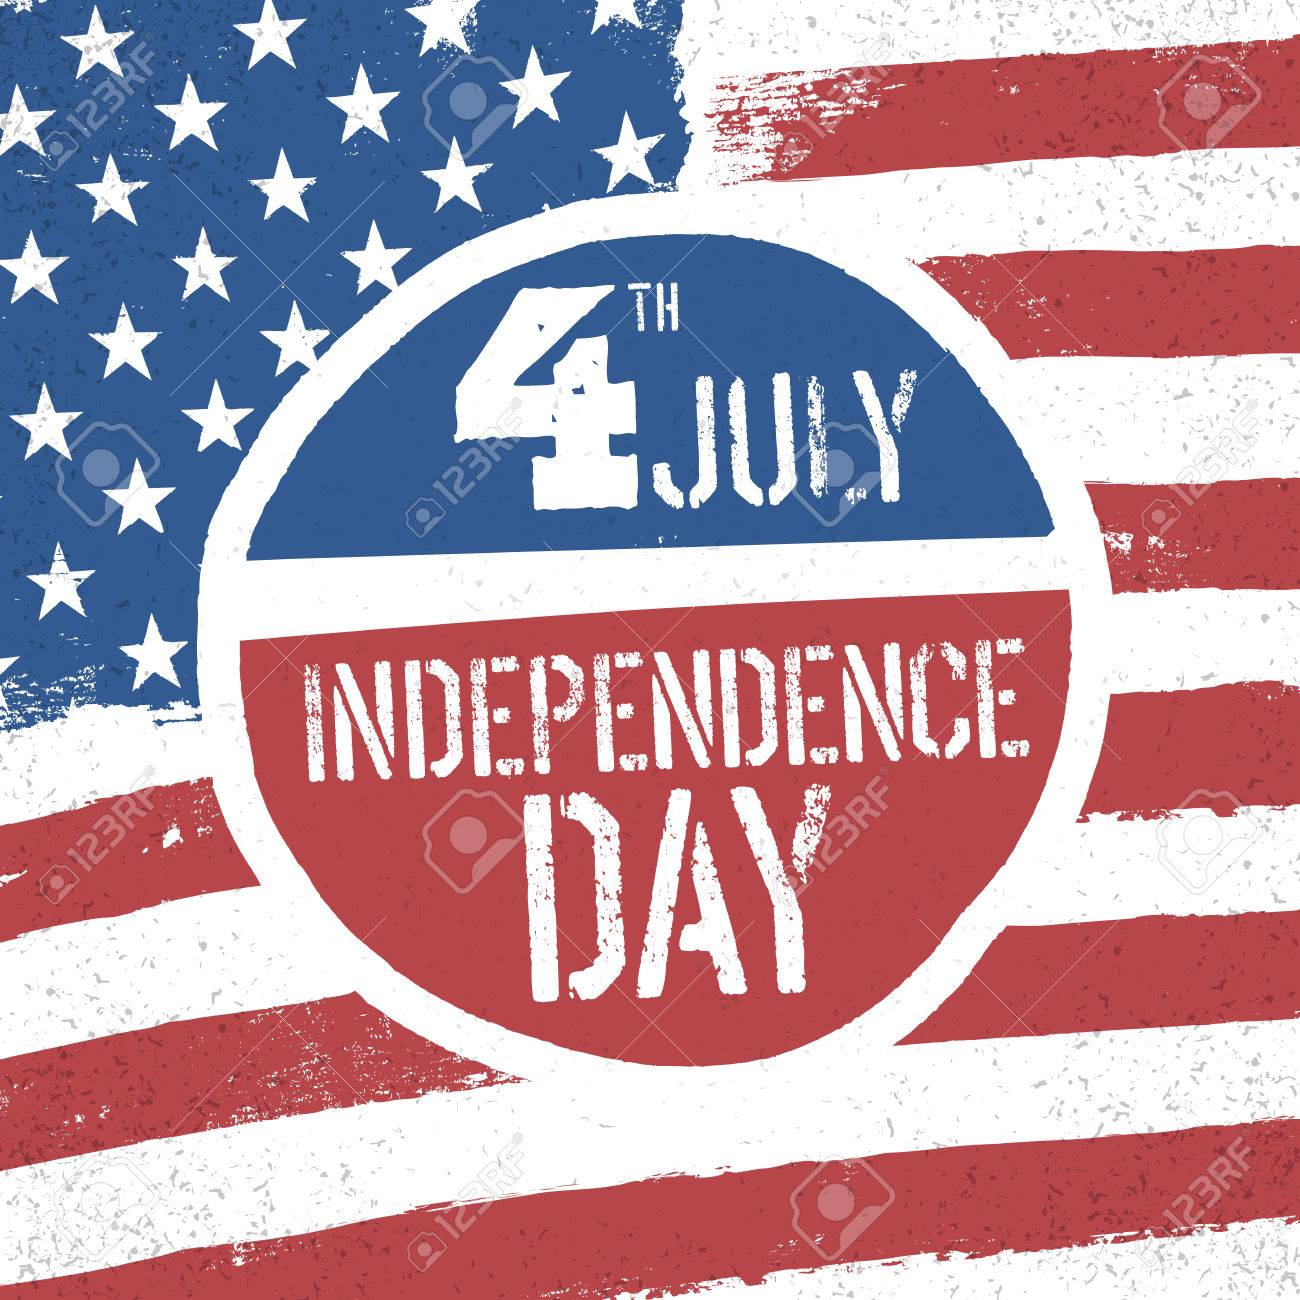 76072833-4th-july-independence-day-american-flag-patriotic-background-us-flag-with-greeting-text-in-circle-us.jpg